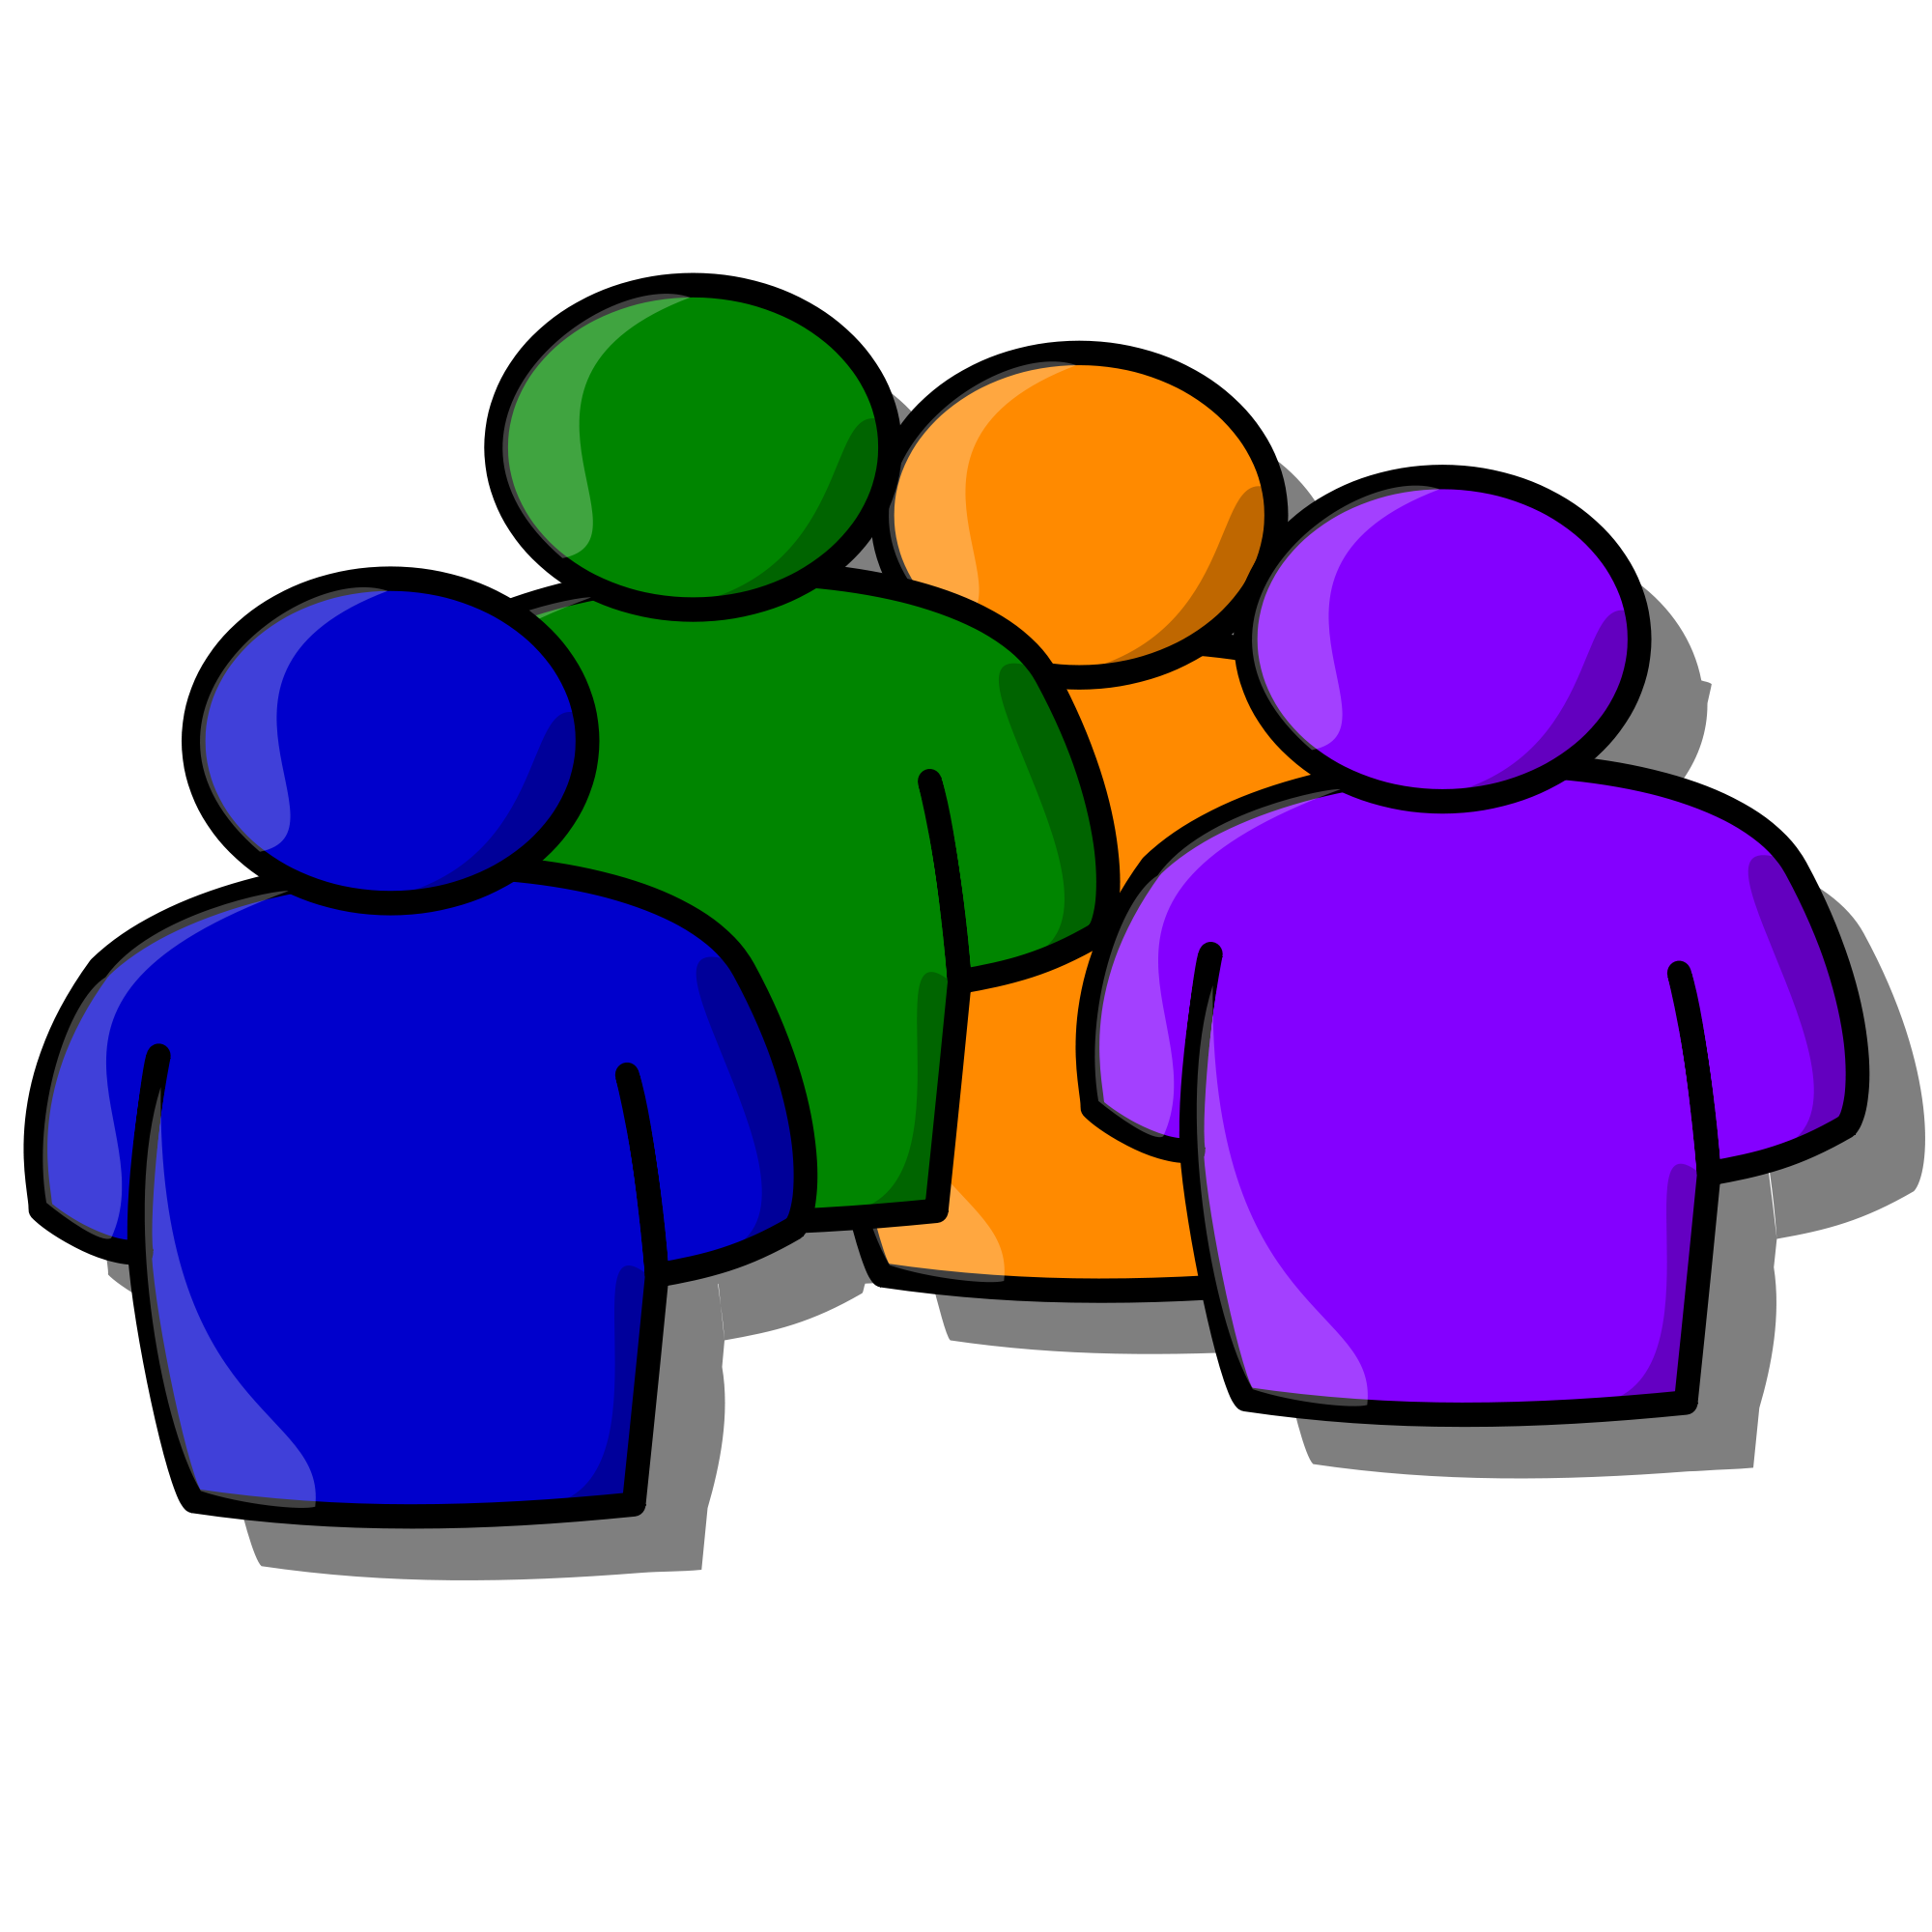 Commons clipart 4 person. File people icon svg